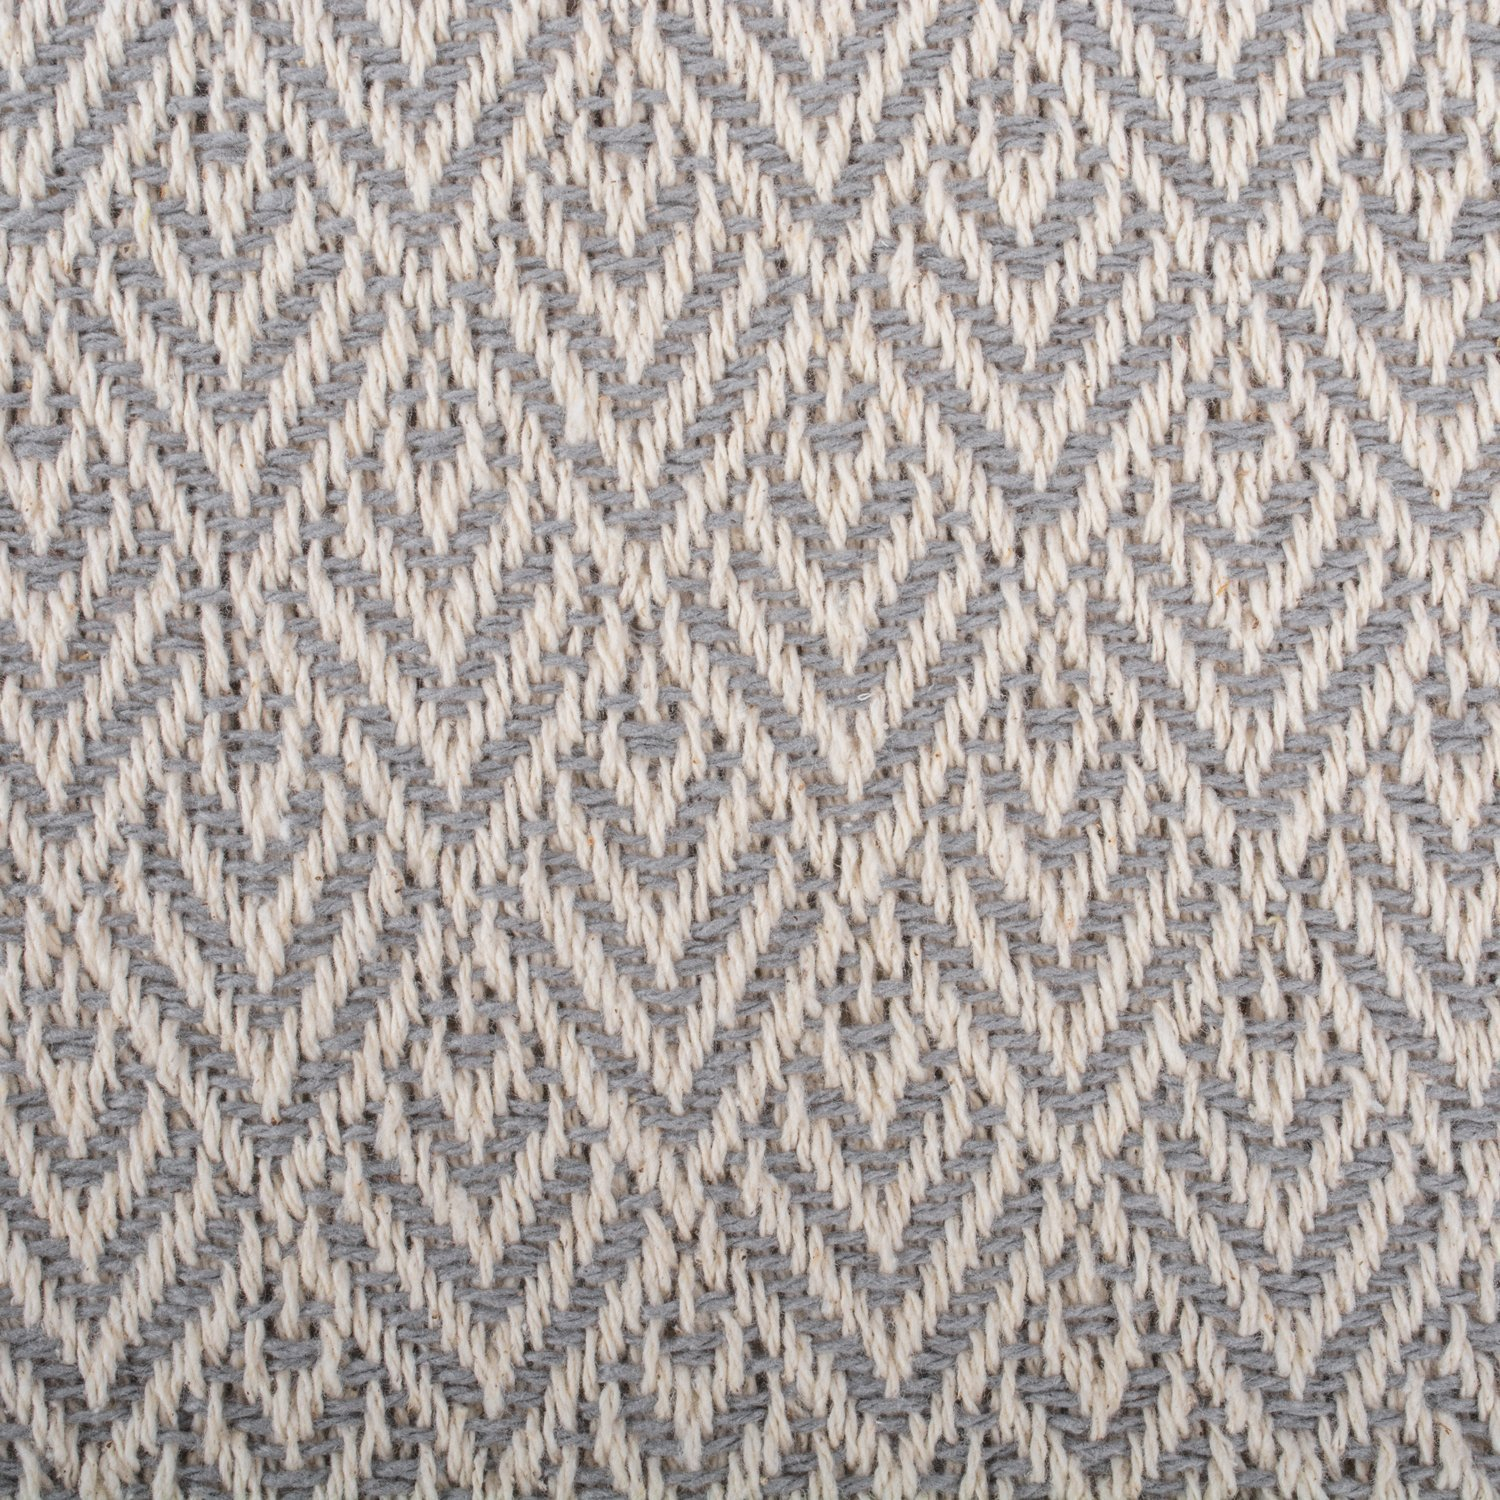 DII Rustic Farmhouse Cotton Diamond Blanket Throw with Fringe for Chair, Couch, Picnic, Camping, Beach, Everyday Use, 50 x 60 - Diamond Gray by DII (Image #2)